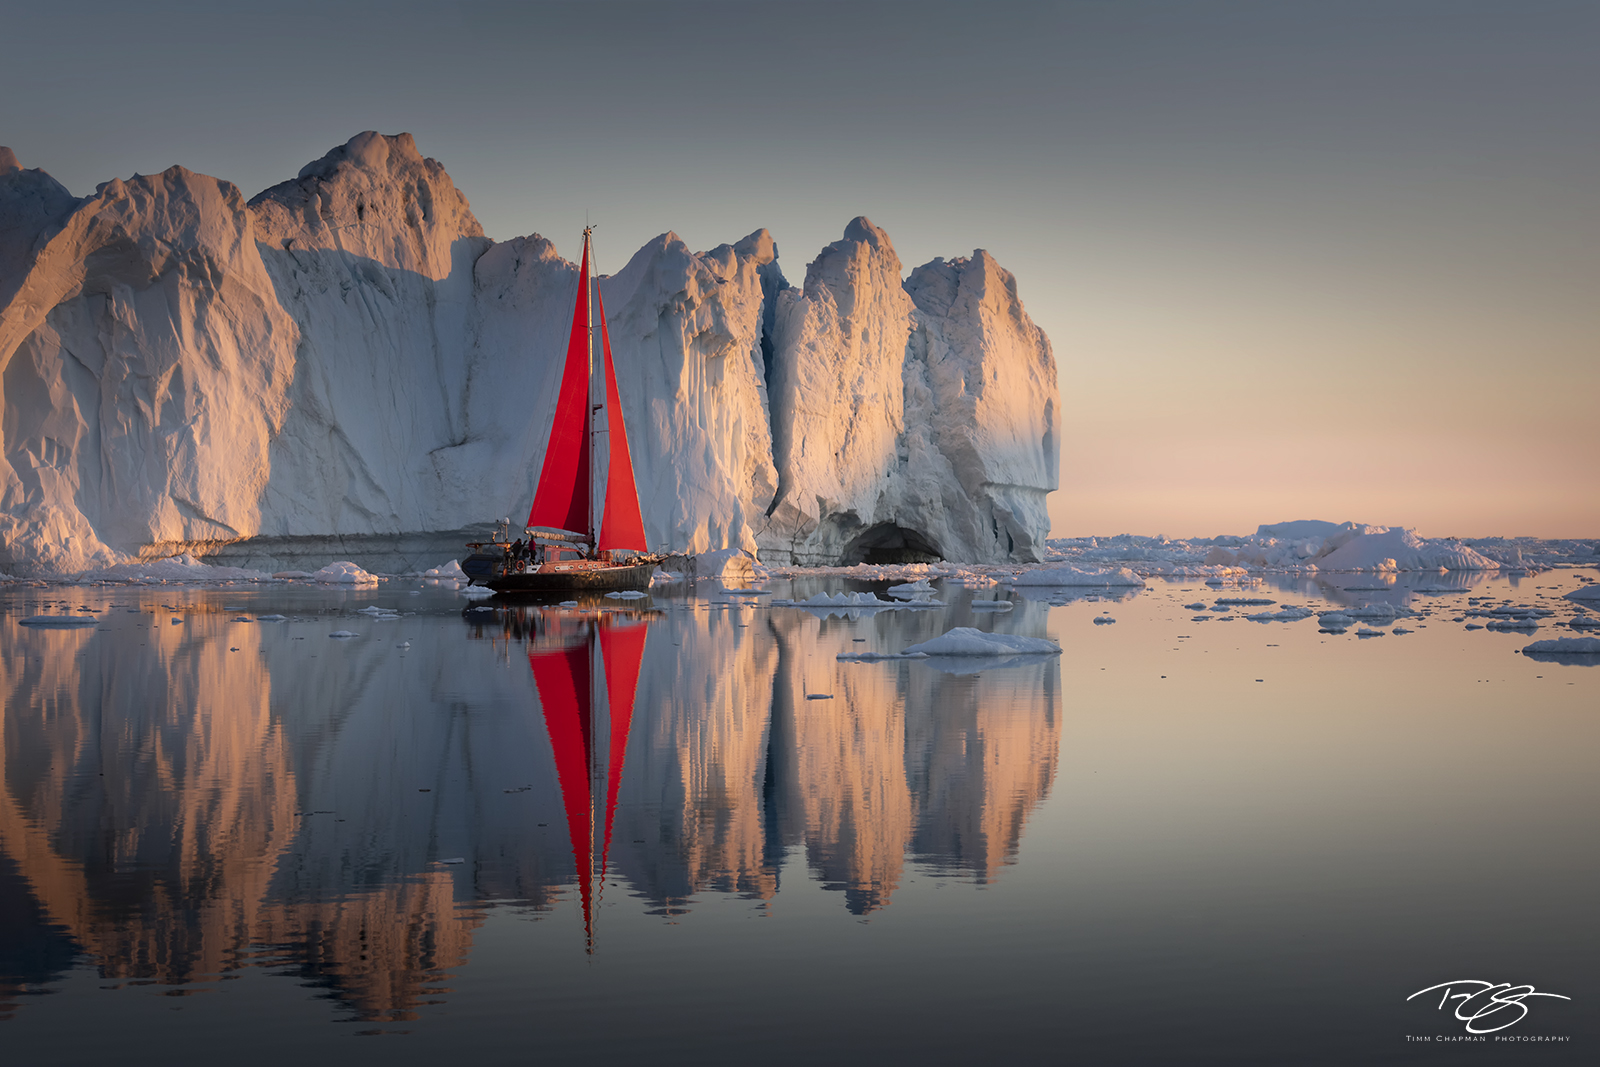 Kangia icefjord; ice; iceberg; disko bay; dawn; sunrise; early morning; icefjord; ship; sailboat; sailing; red sails; schooner; scarlet sails; yacht, reflection; golden light; golden hour; pastel sky, photo